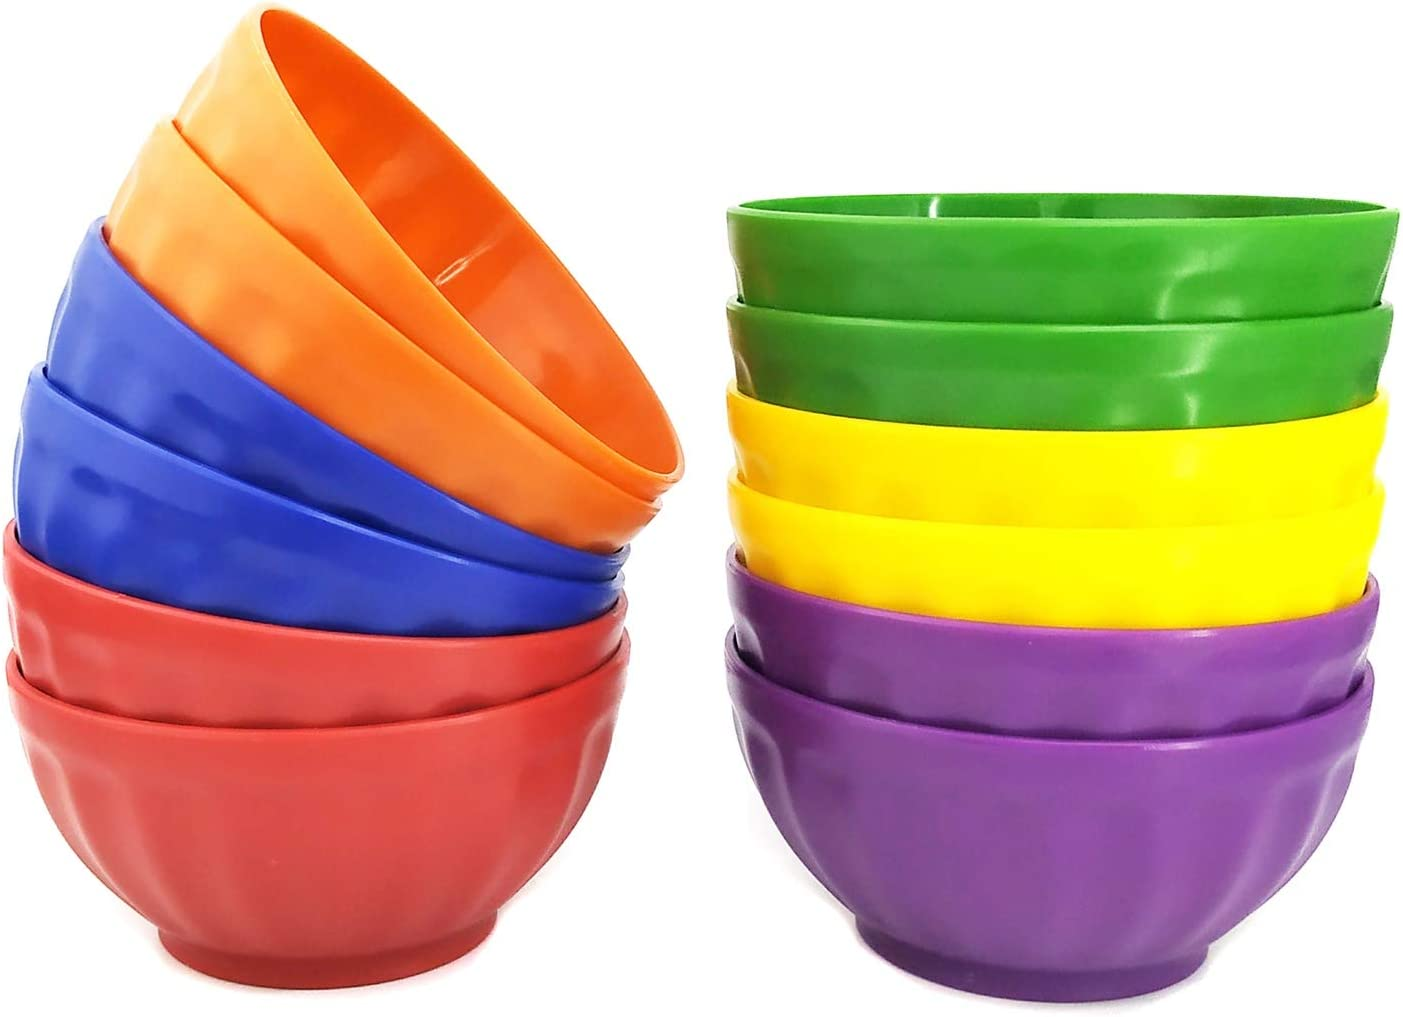 Unbreakable 28-ounce Plastic Free shipping anywhere in the nation Bowls Set Salad Spring new work one after another Cereal